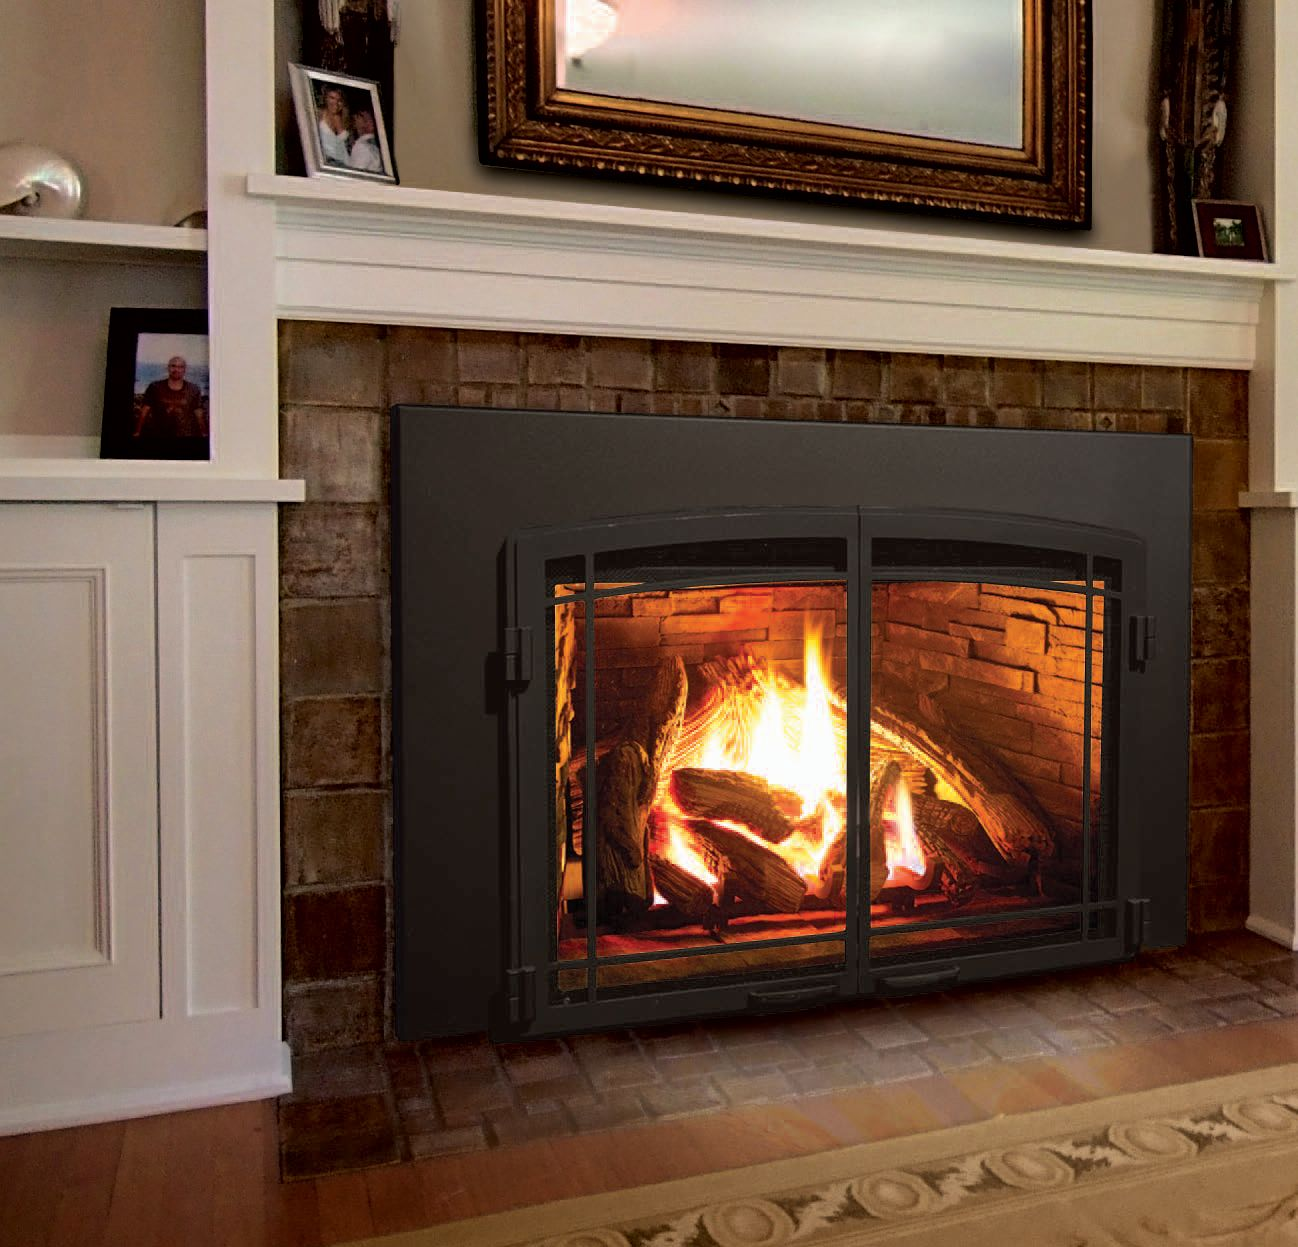 The Enviro E44 Gas Fireplace Insert Fireplace Living Room With